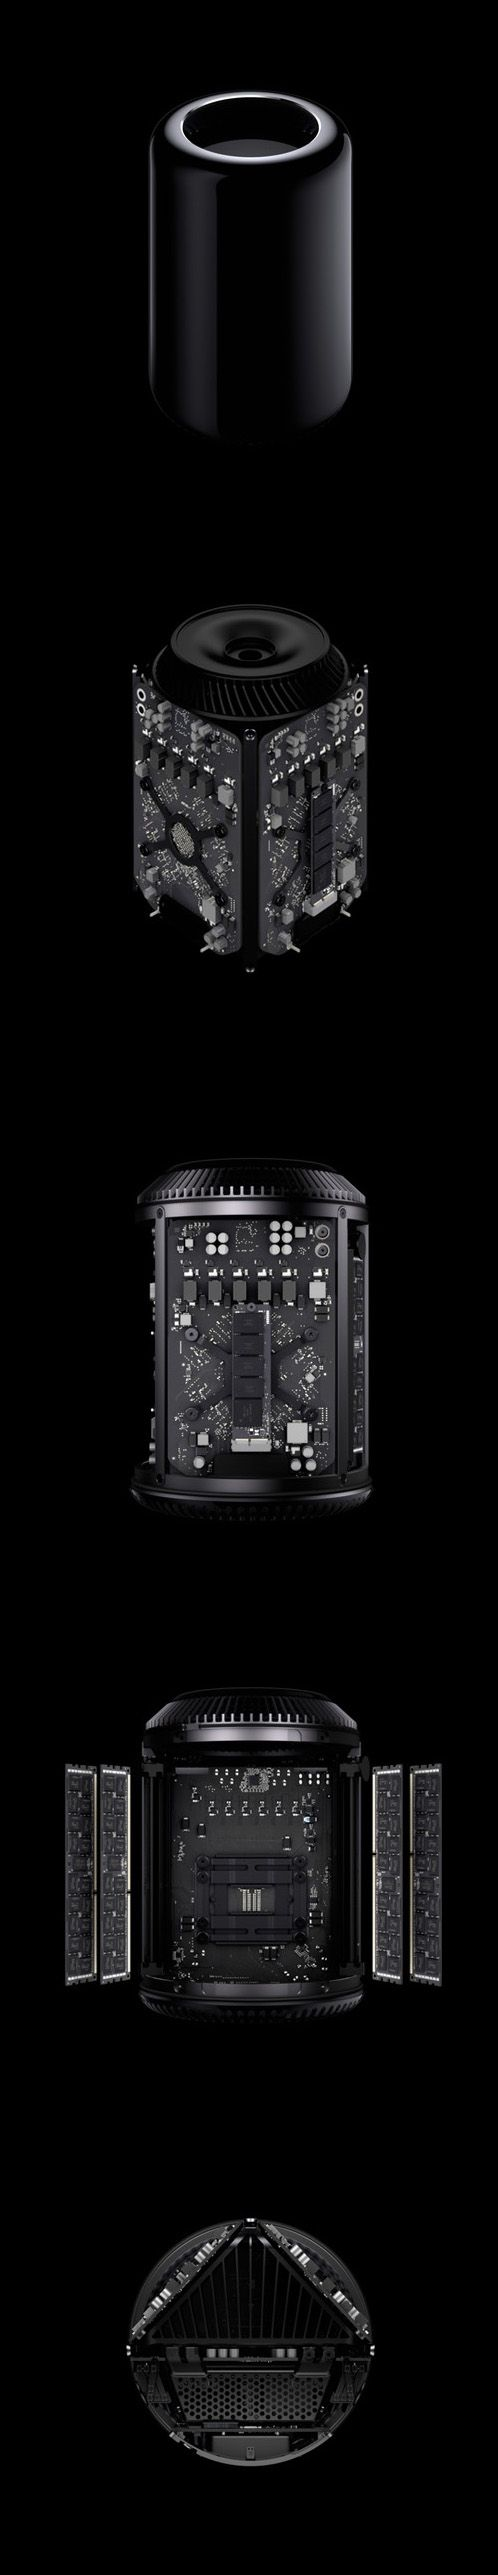 New Mac Pro Beautiful !!!